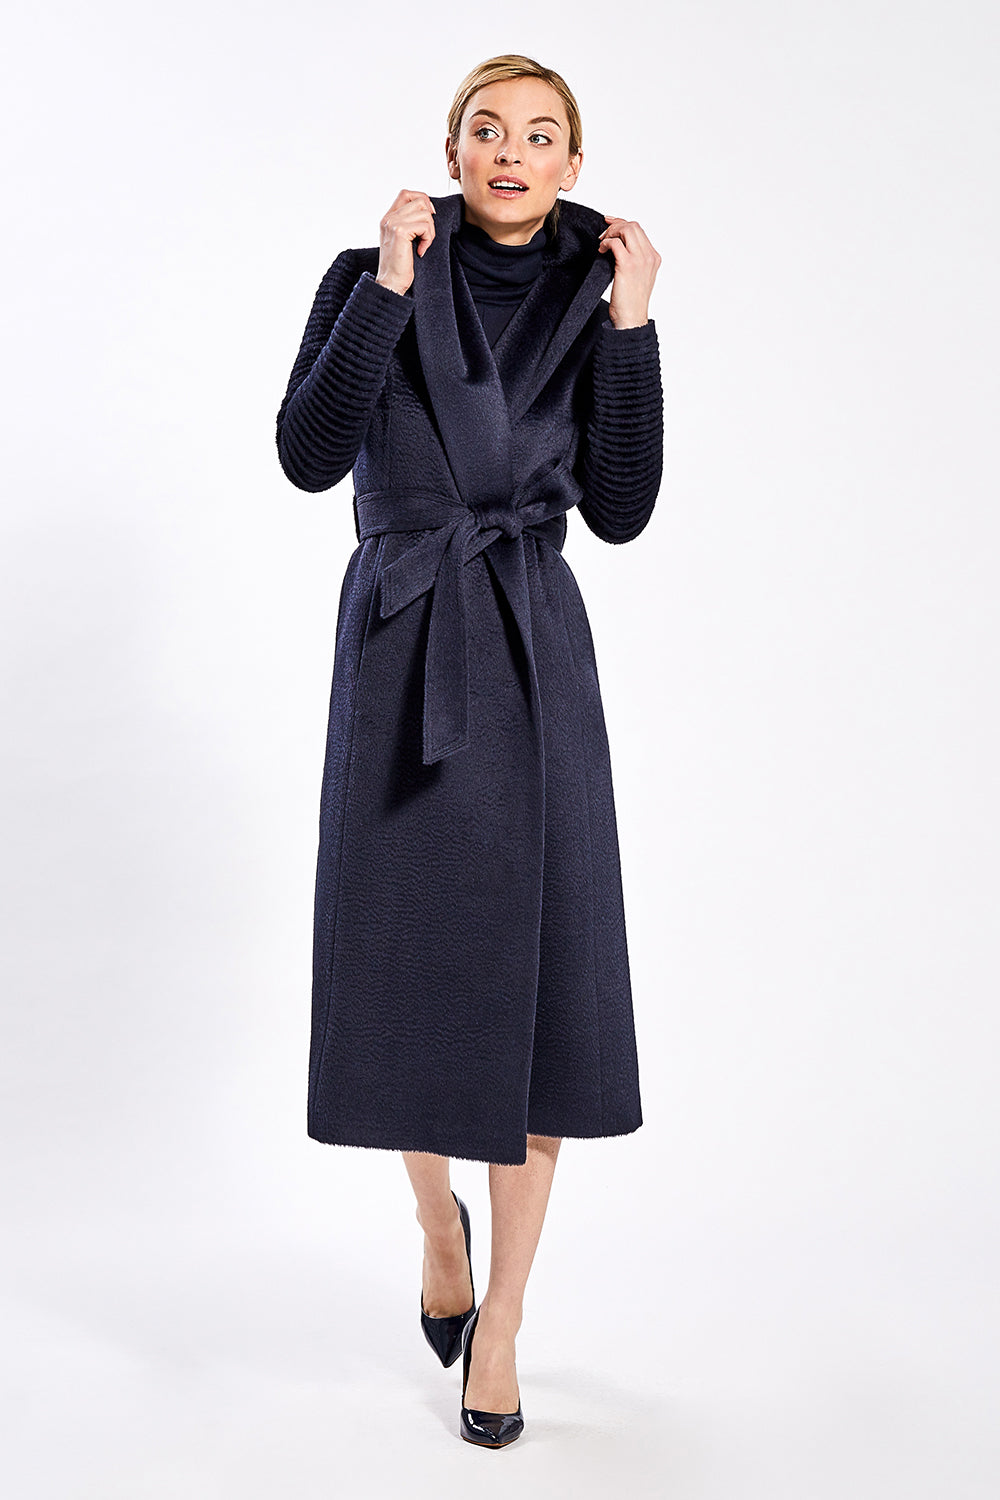 Sentaler Suri Alpaca Long Shawl Collar Wrap Coat with Ribbed Sleeves featured in Suri Alpaca and available in Navy. Seen from front.